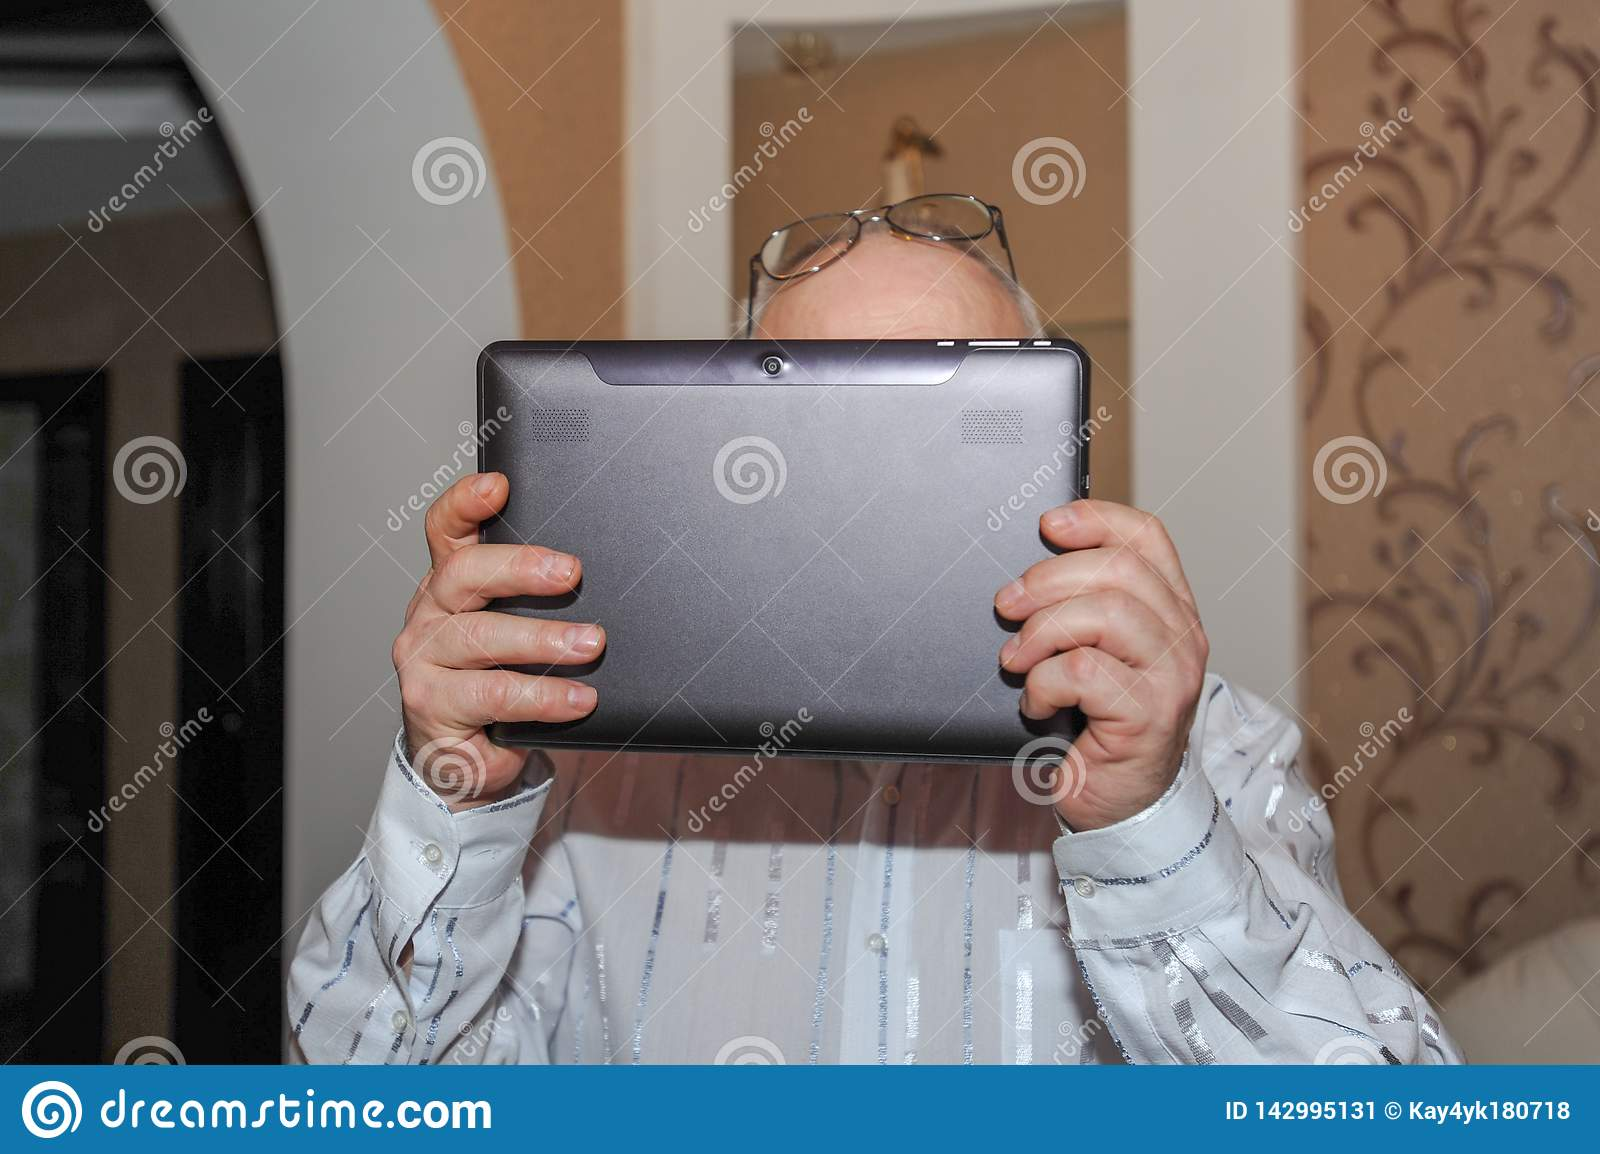 Elderly man holding tablet on lap, planning and booking retirement trip, closeup. using a tablet in his house